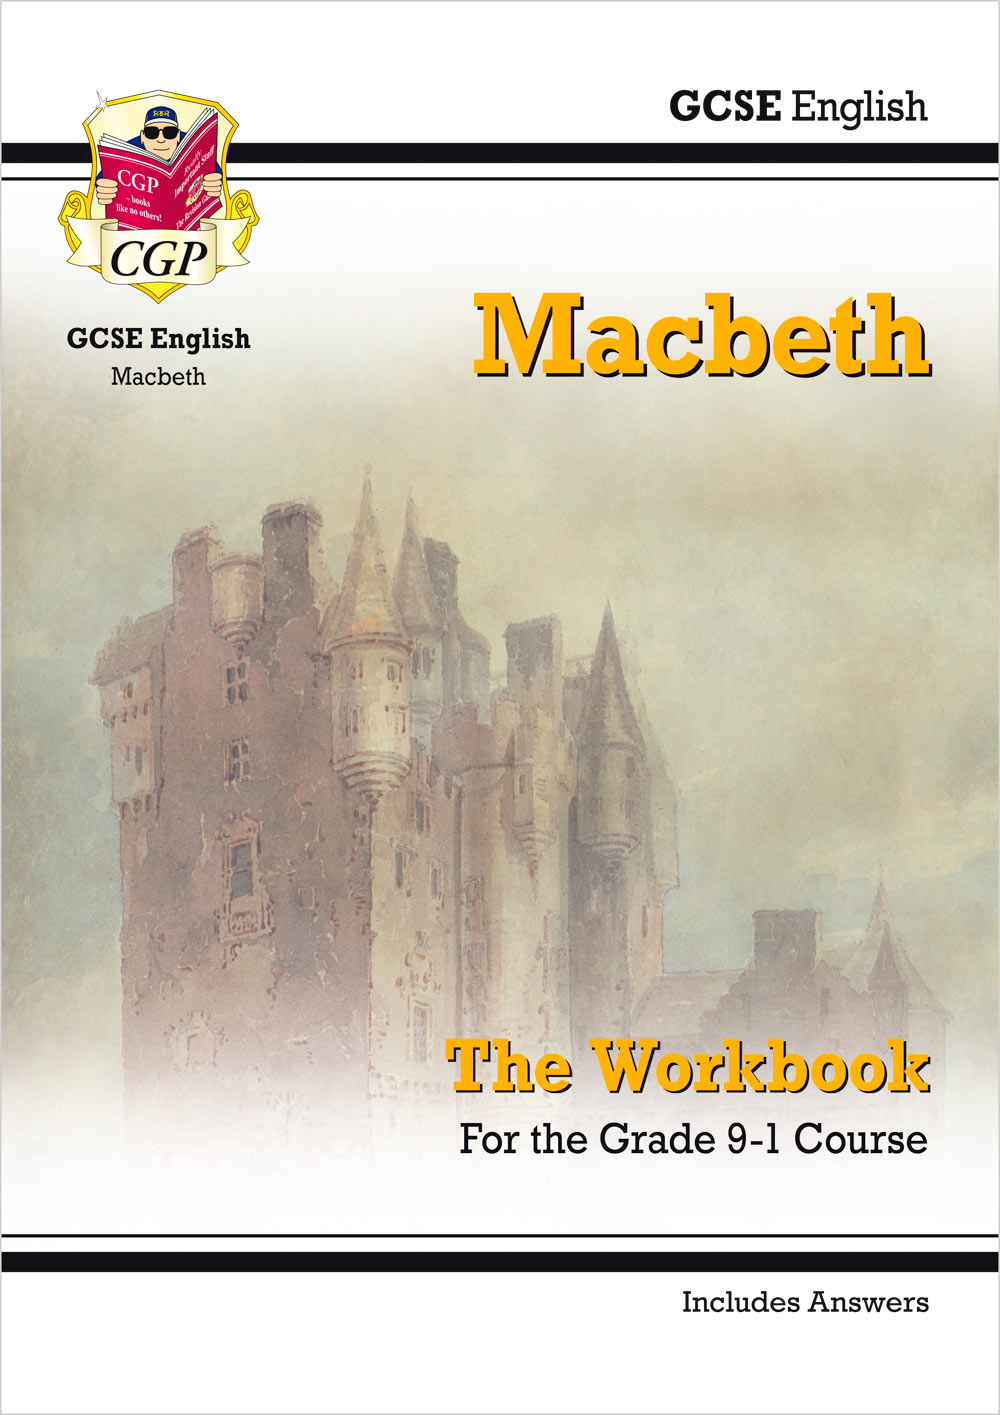 ETWM41 - Grade 9-1 GCSE English Shakespeare - Macbeth Workbook (includes Answers)